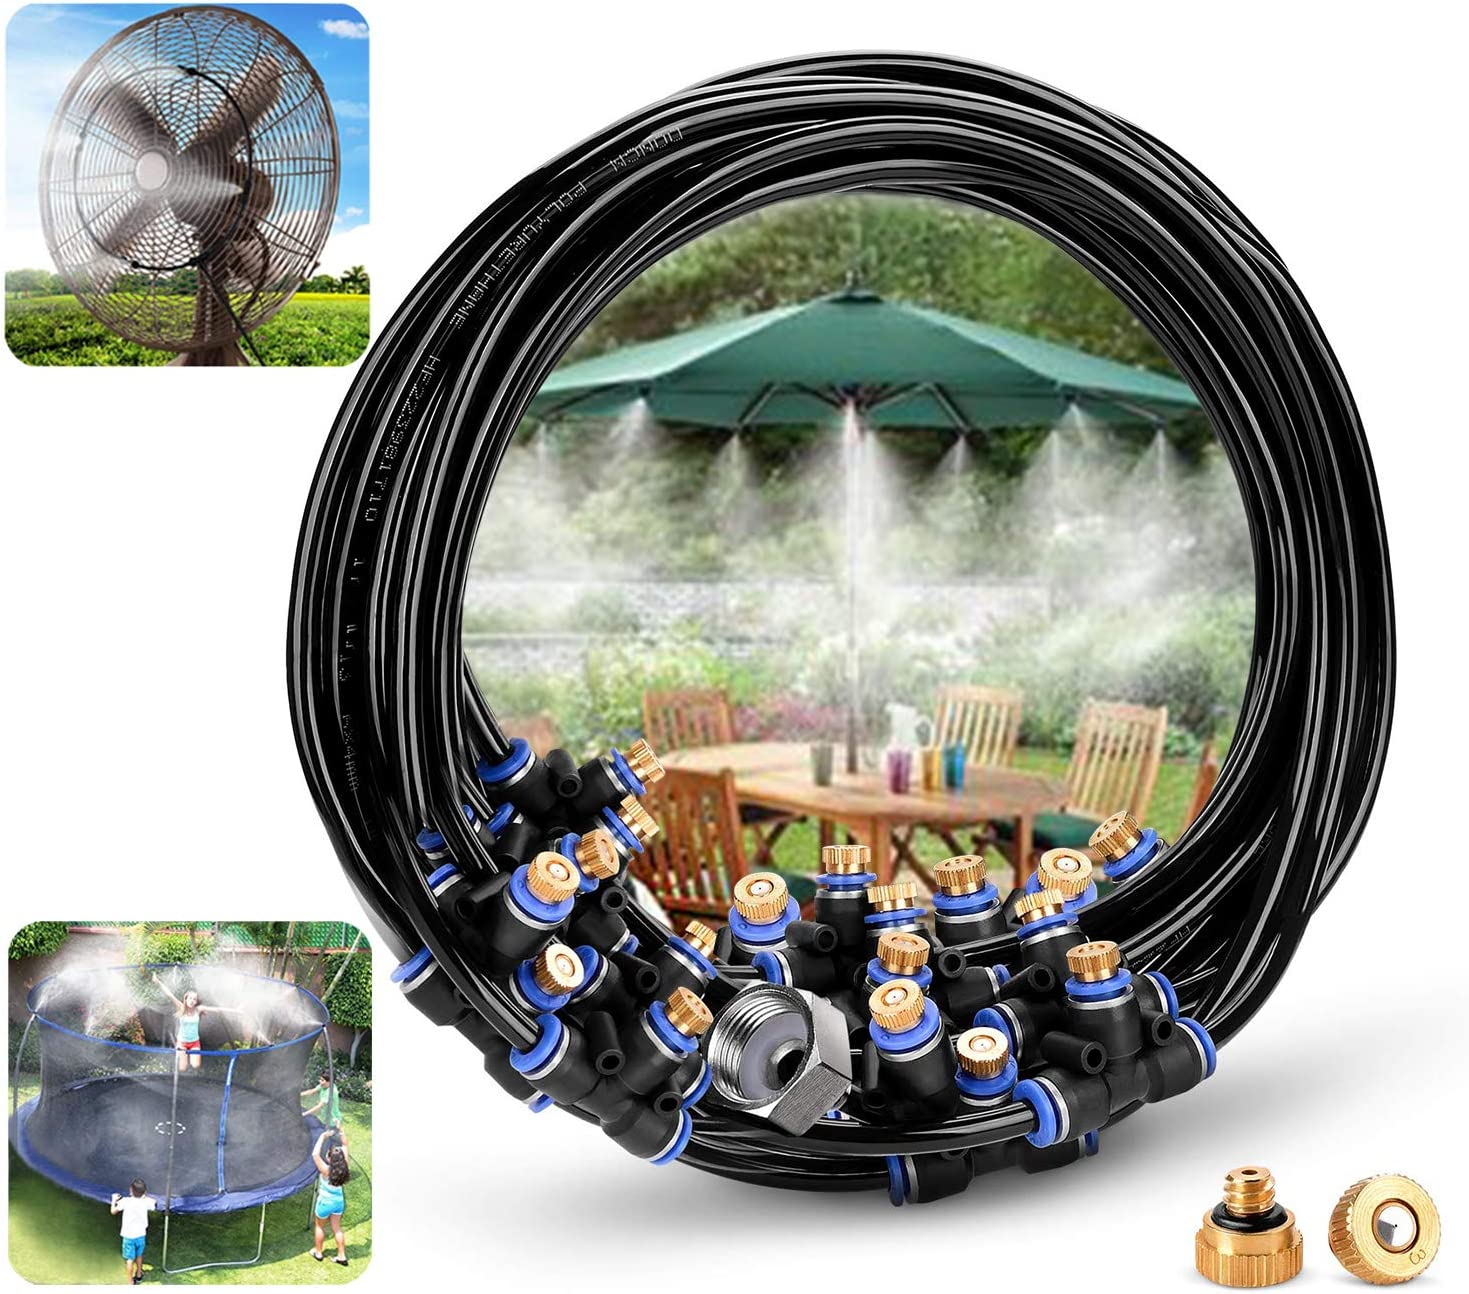 GLANT Misting Cooling System Misters Cooling 27ft Outdoor Mister for Patio Garden Greenhouse Umbrellas Irrigation Sprinkle with 27ft Misting Line + 11 Brass Mist Nozzles + a (3/4) Brass Adapter